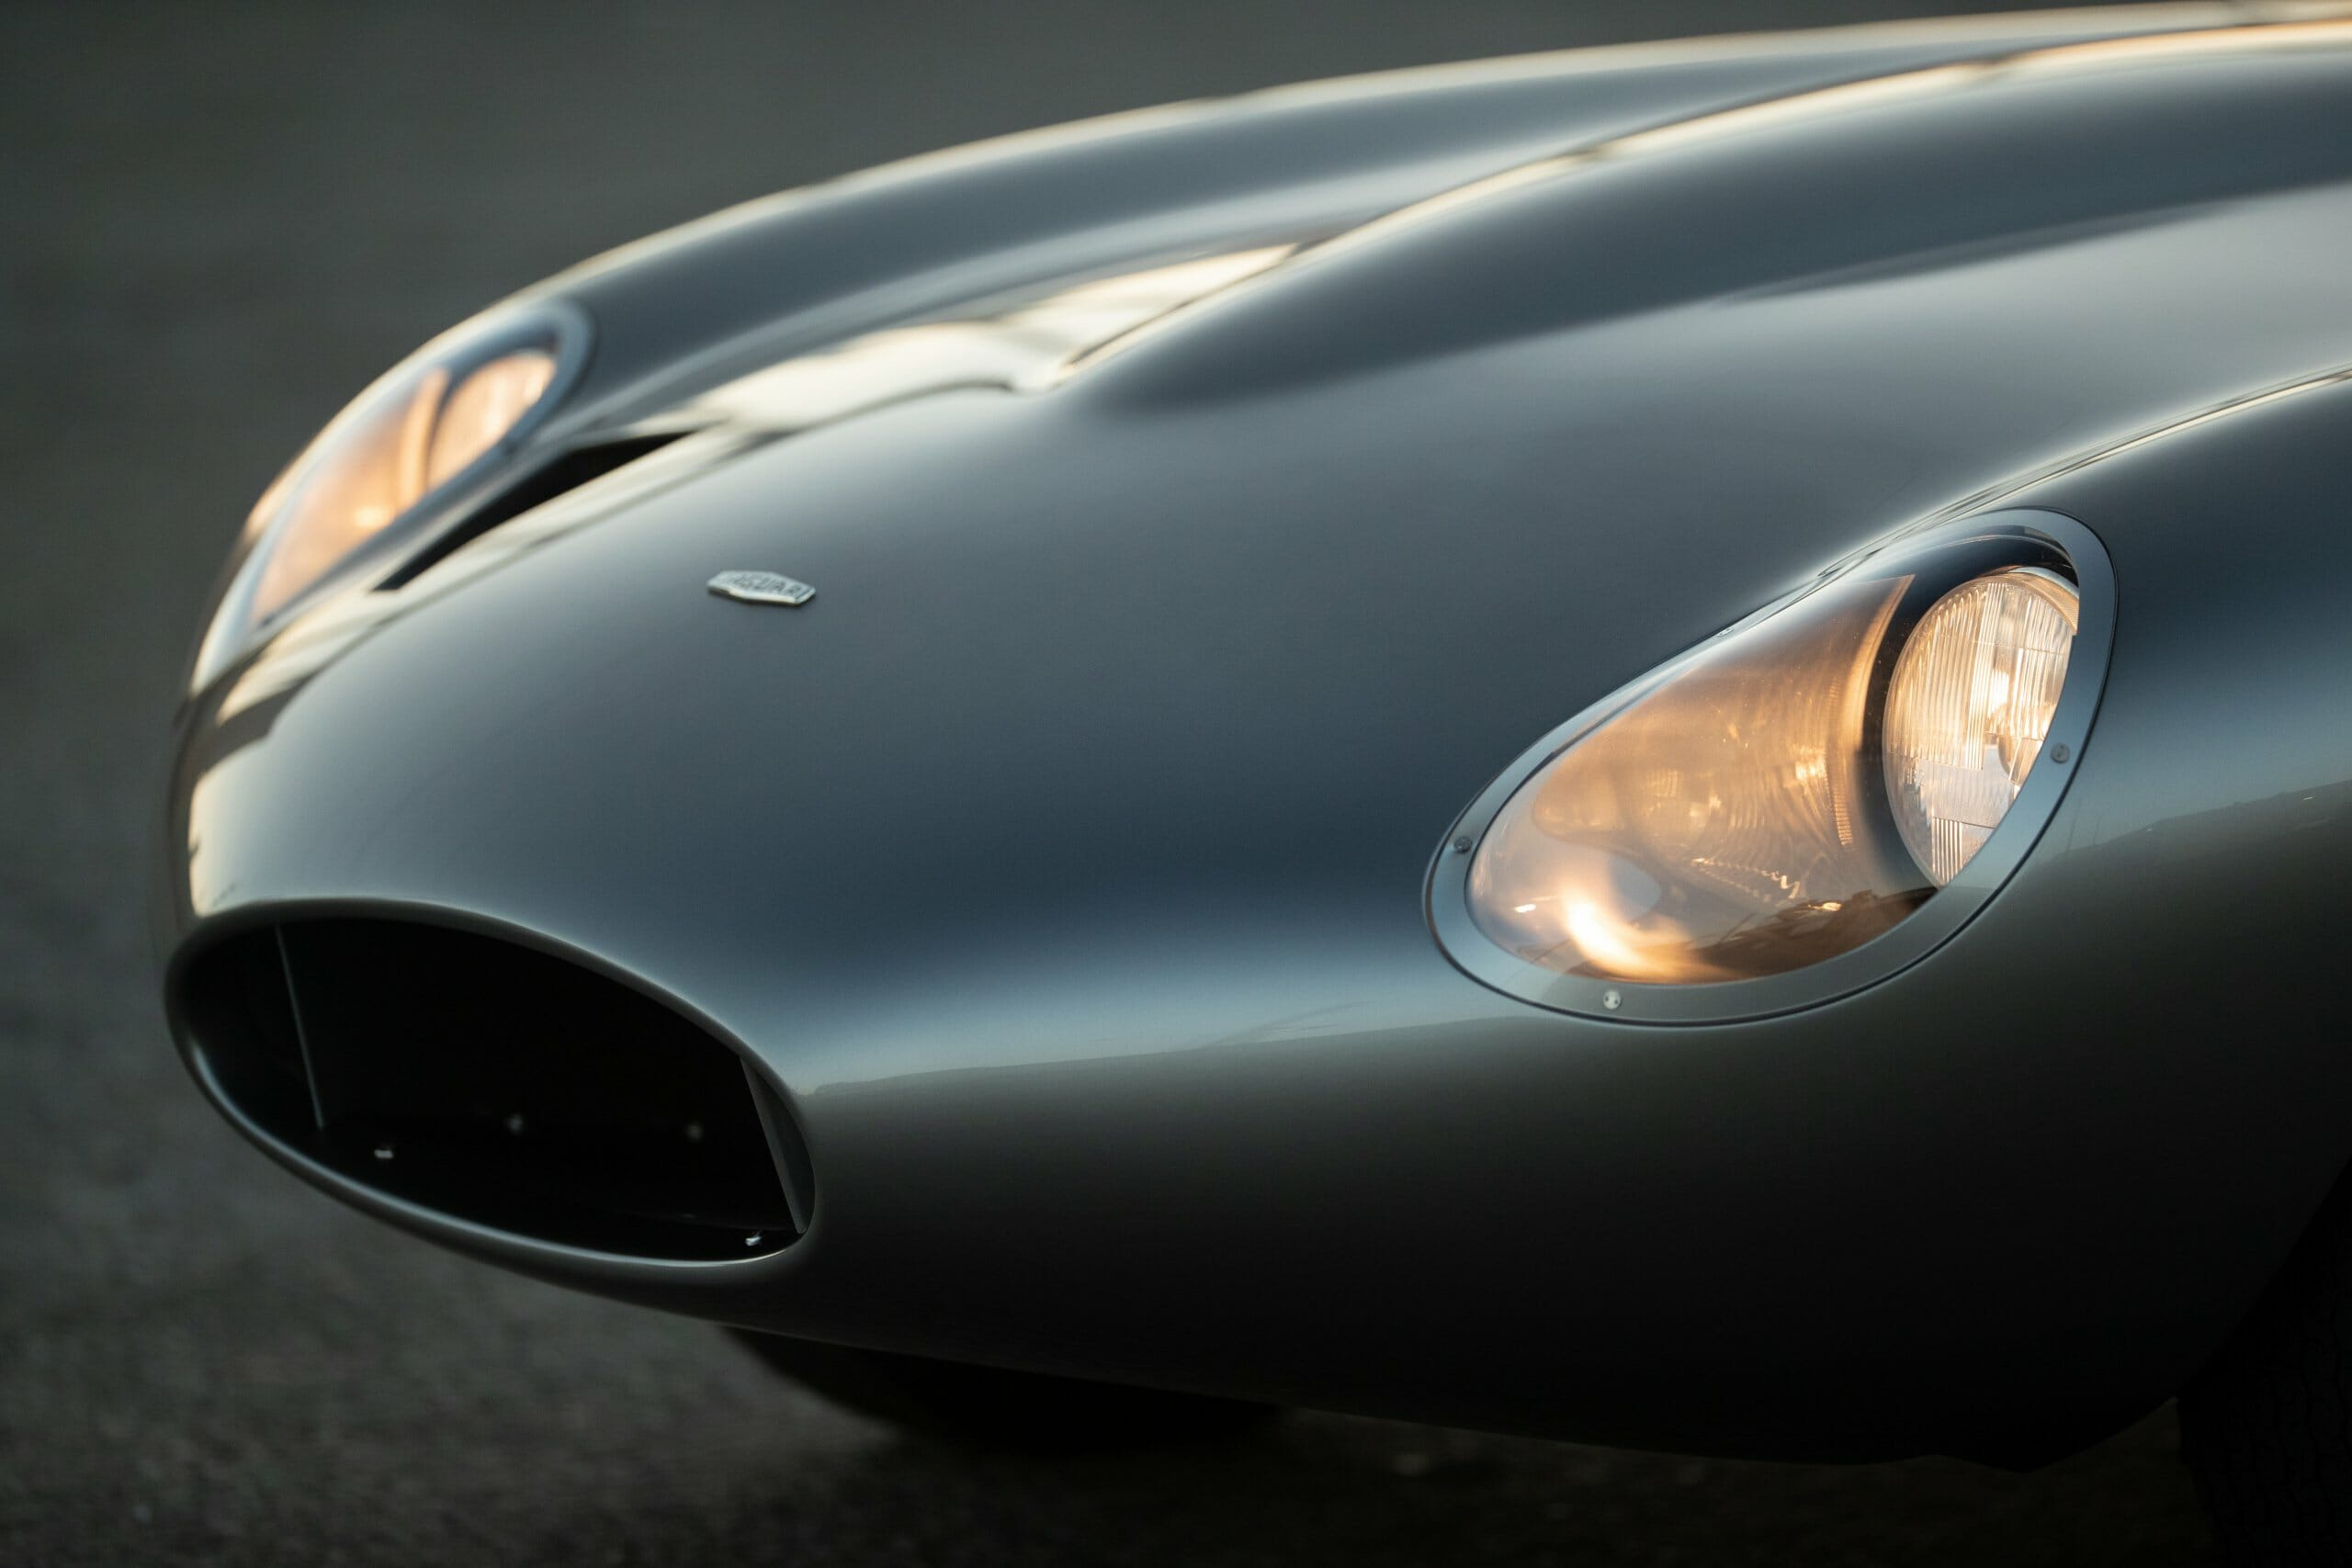 Jaguar E-type, This 1963 Jaguar E-type Low Drag Coupe re-creation is an 8-year labor of love, ClassicCars.com Journal